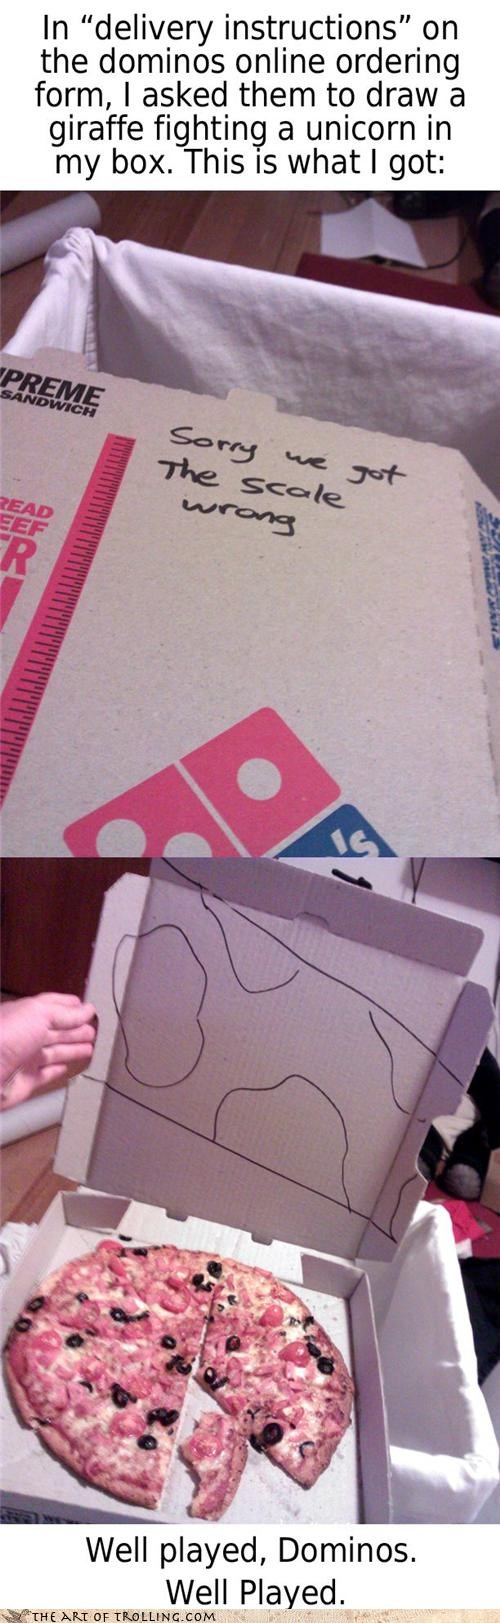 boxes dominos fight giraffes IRL pizza unicorn - 4395927296